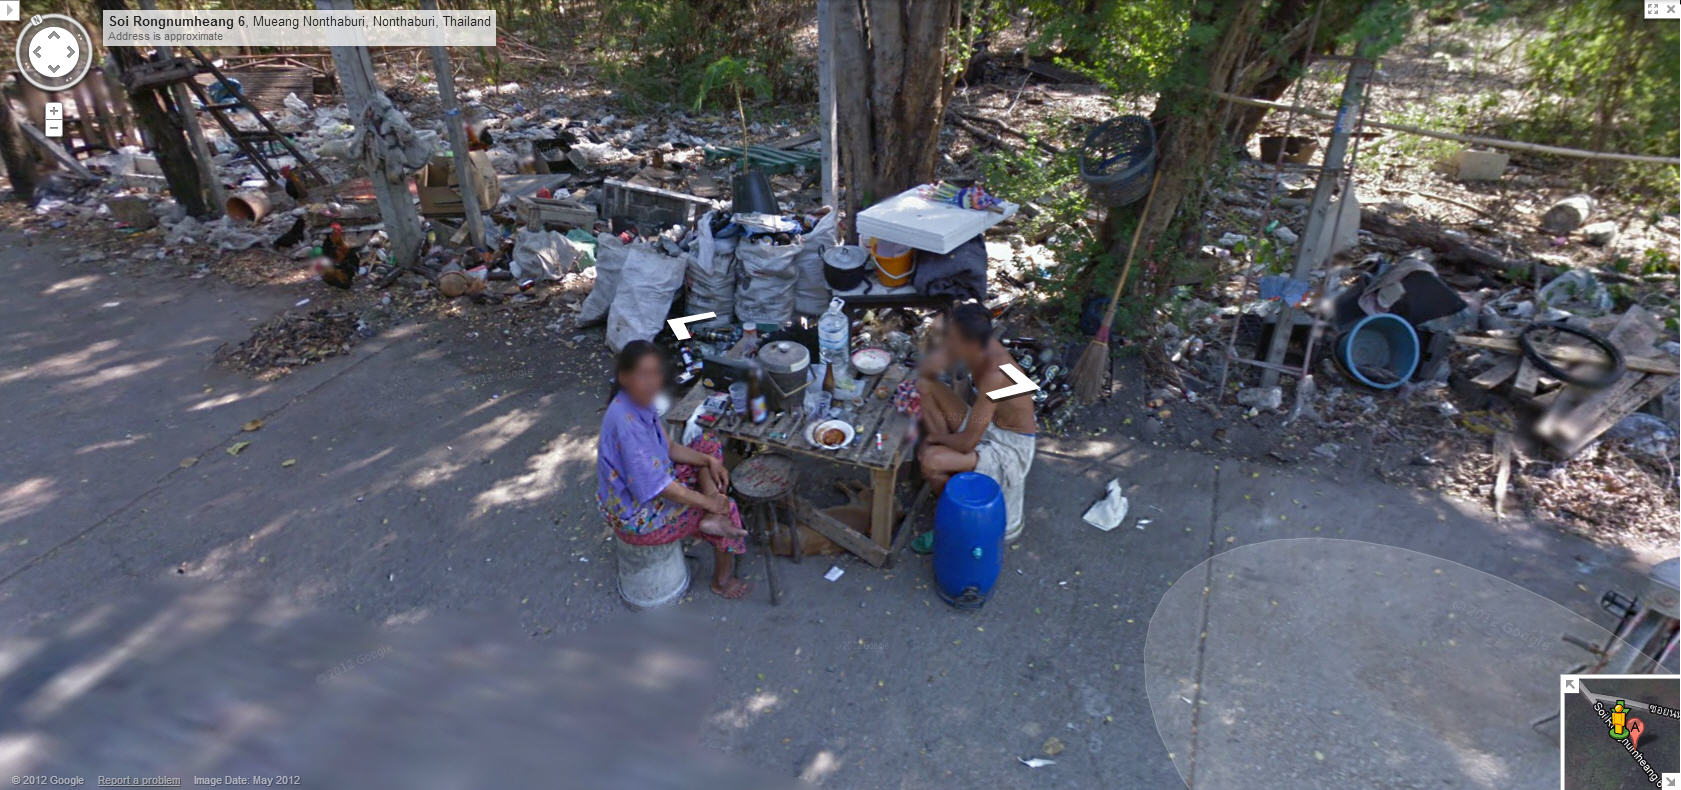 google-street-view-captures-lunch-time-in-rural-thailand